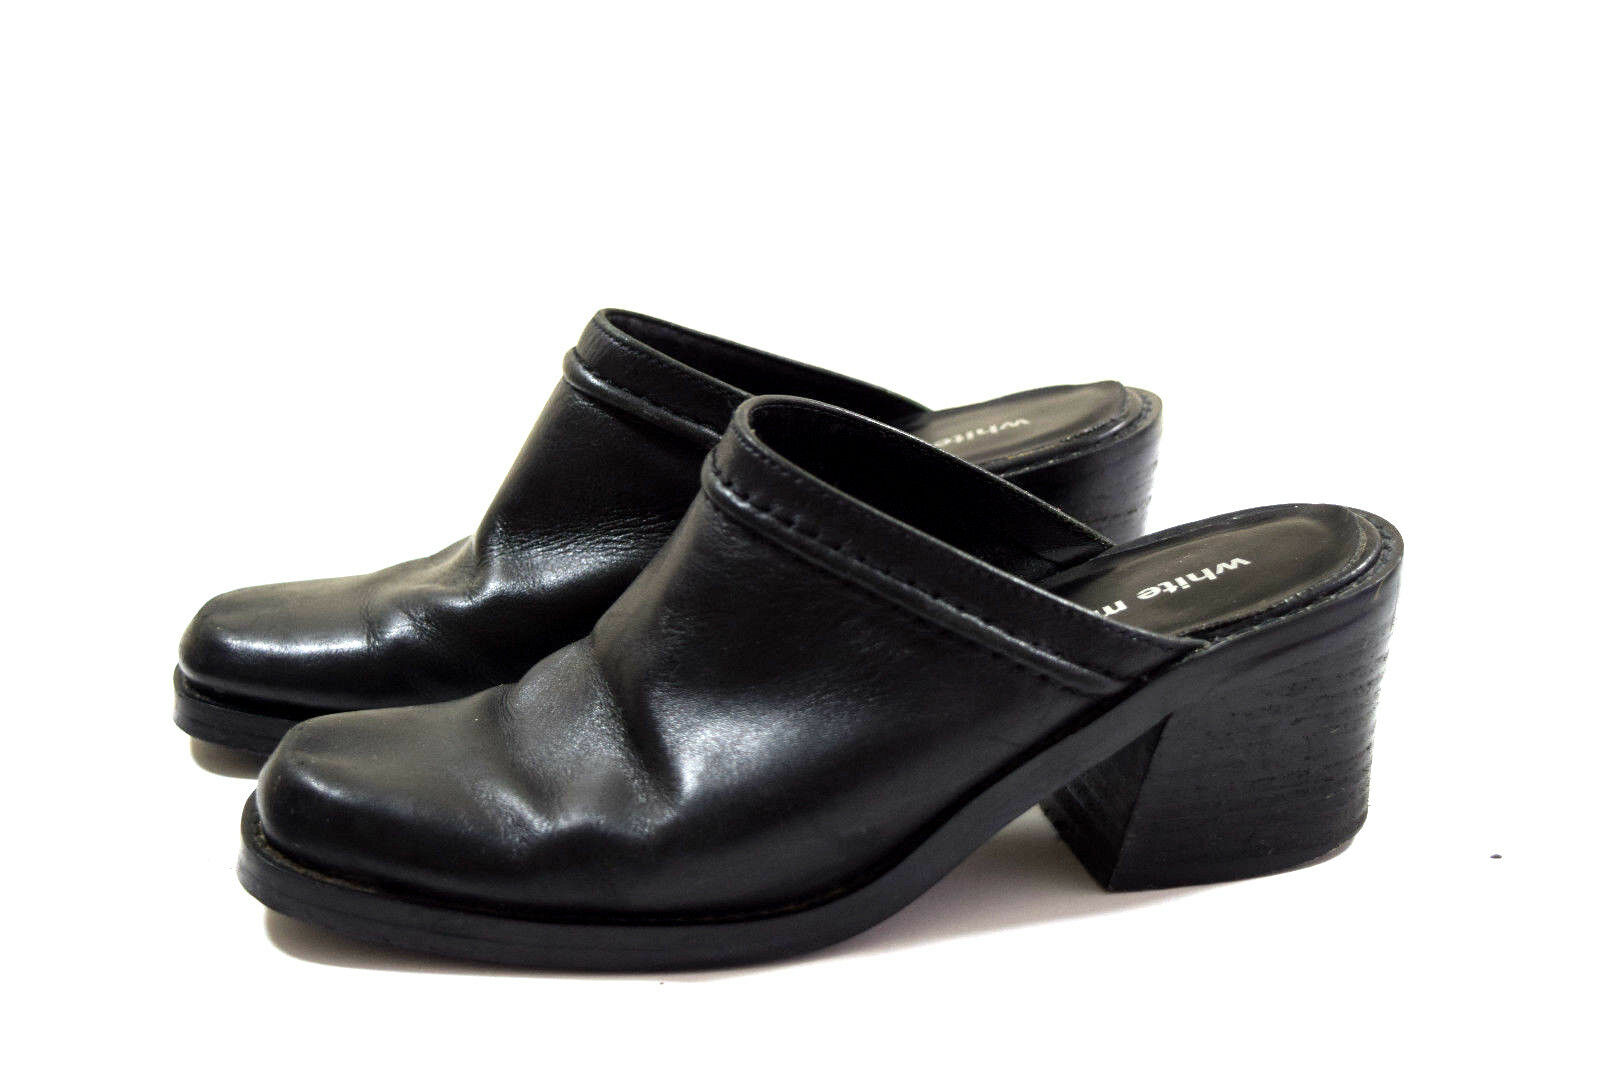 WHITE MOUNTAIN Women's SHOES 6 BLACK LEATHER SLIP ON CLOG MULES SHOES 6